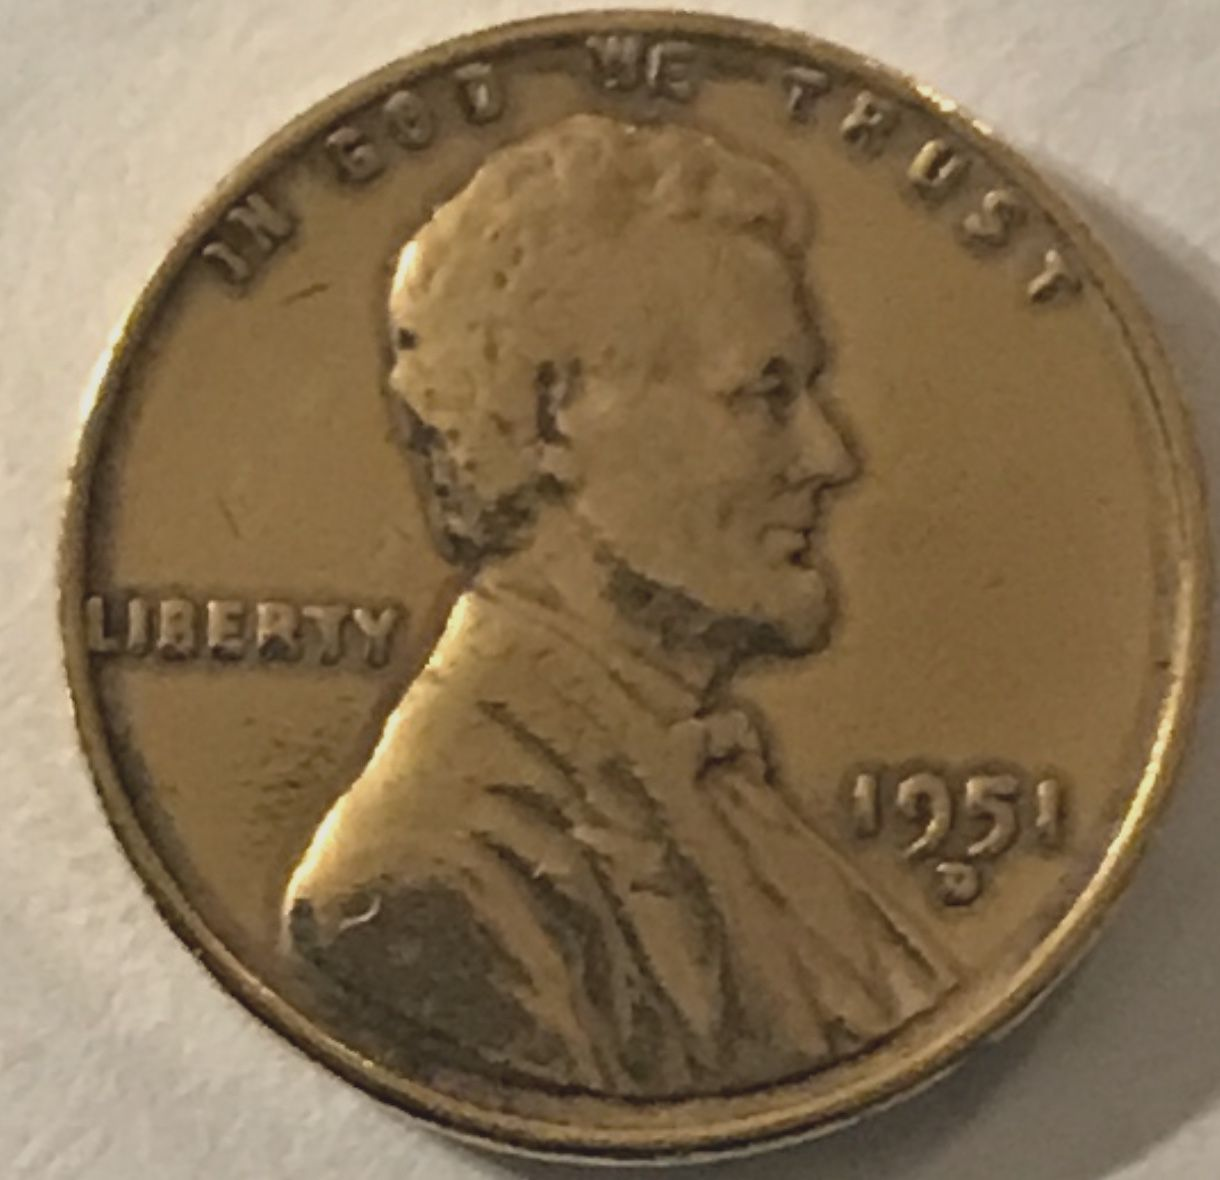 1951-d Gold colored Wheat penny - Newbie Coin Collecting